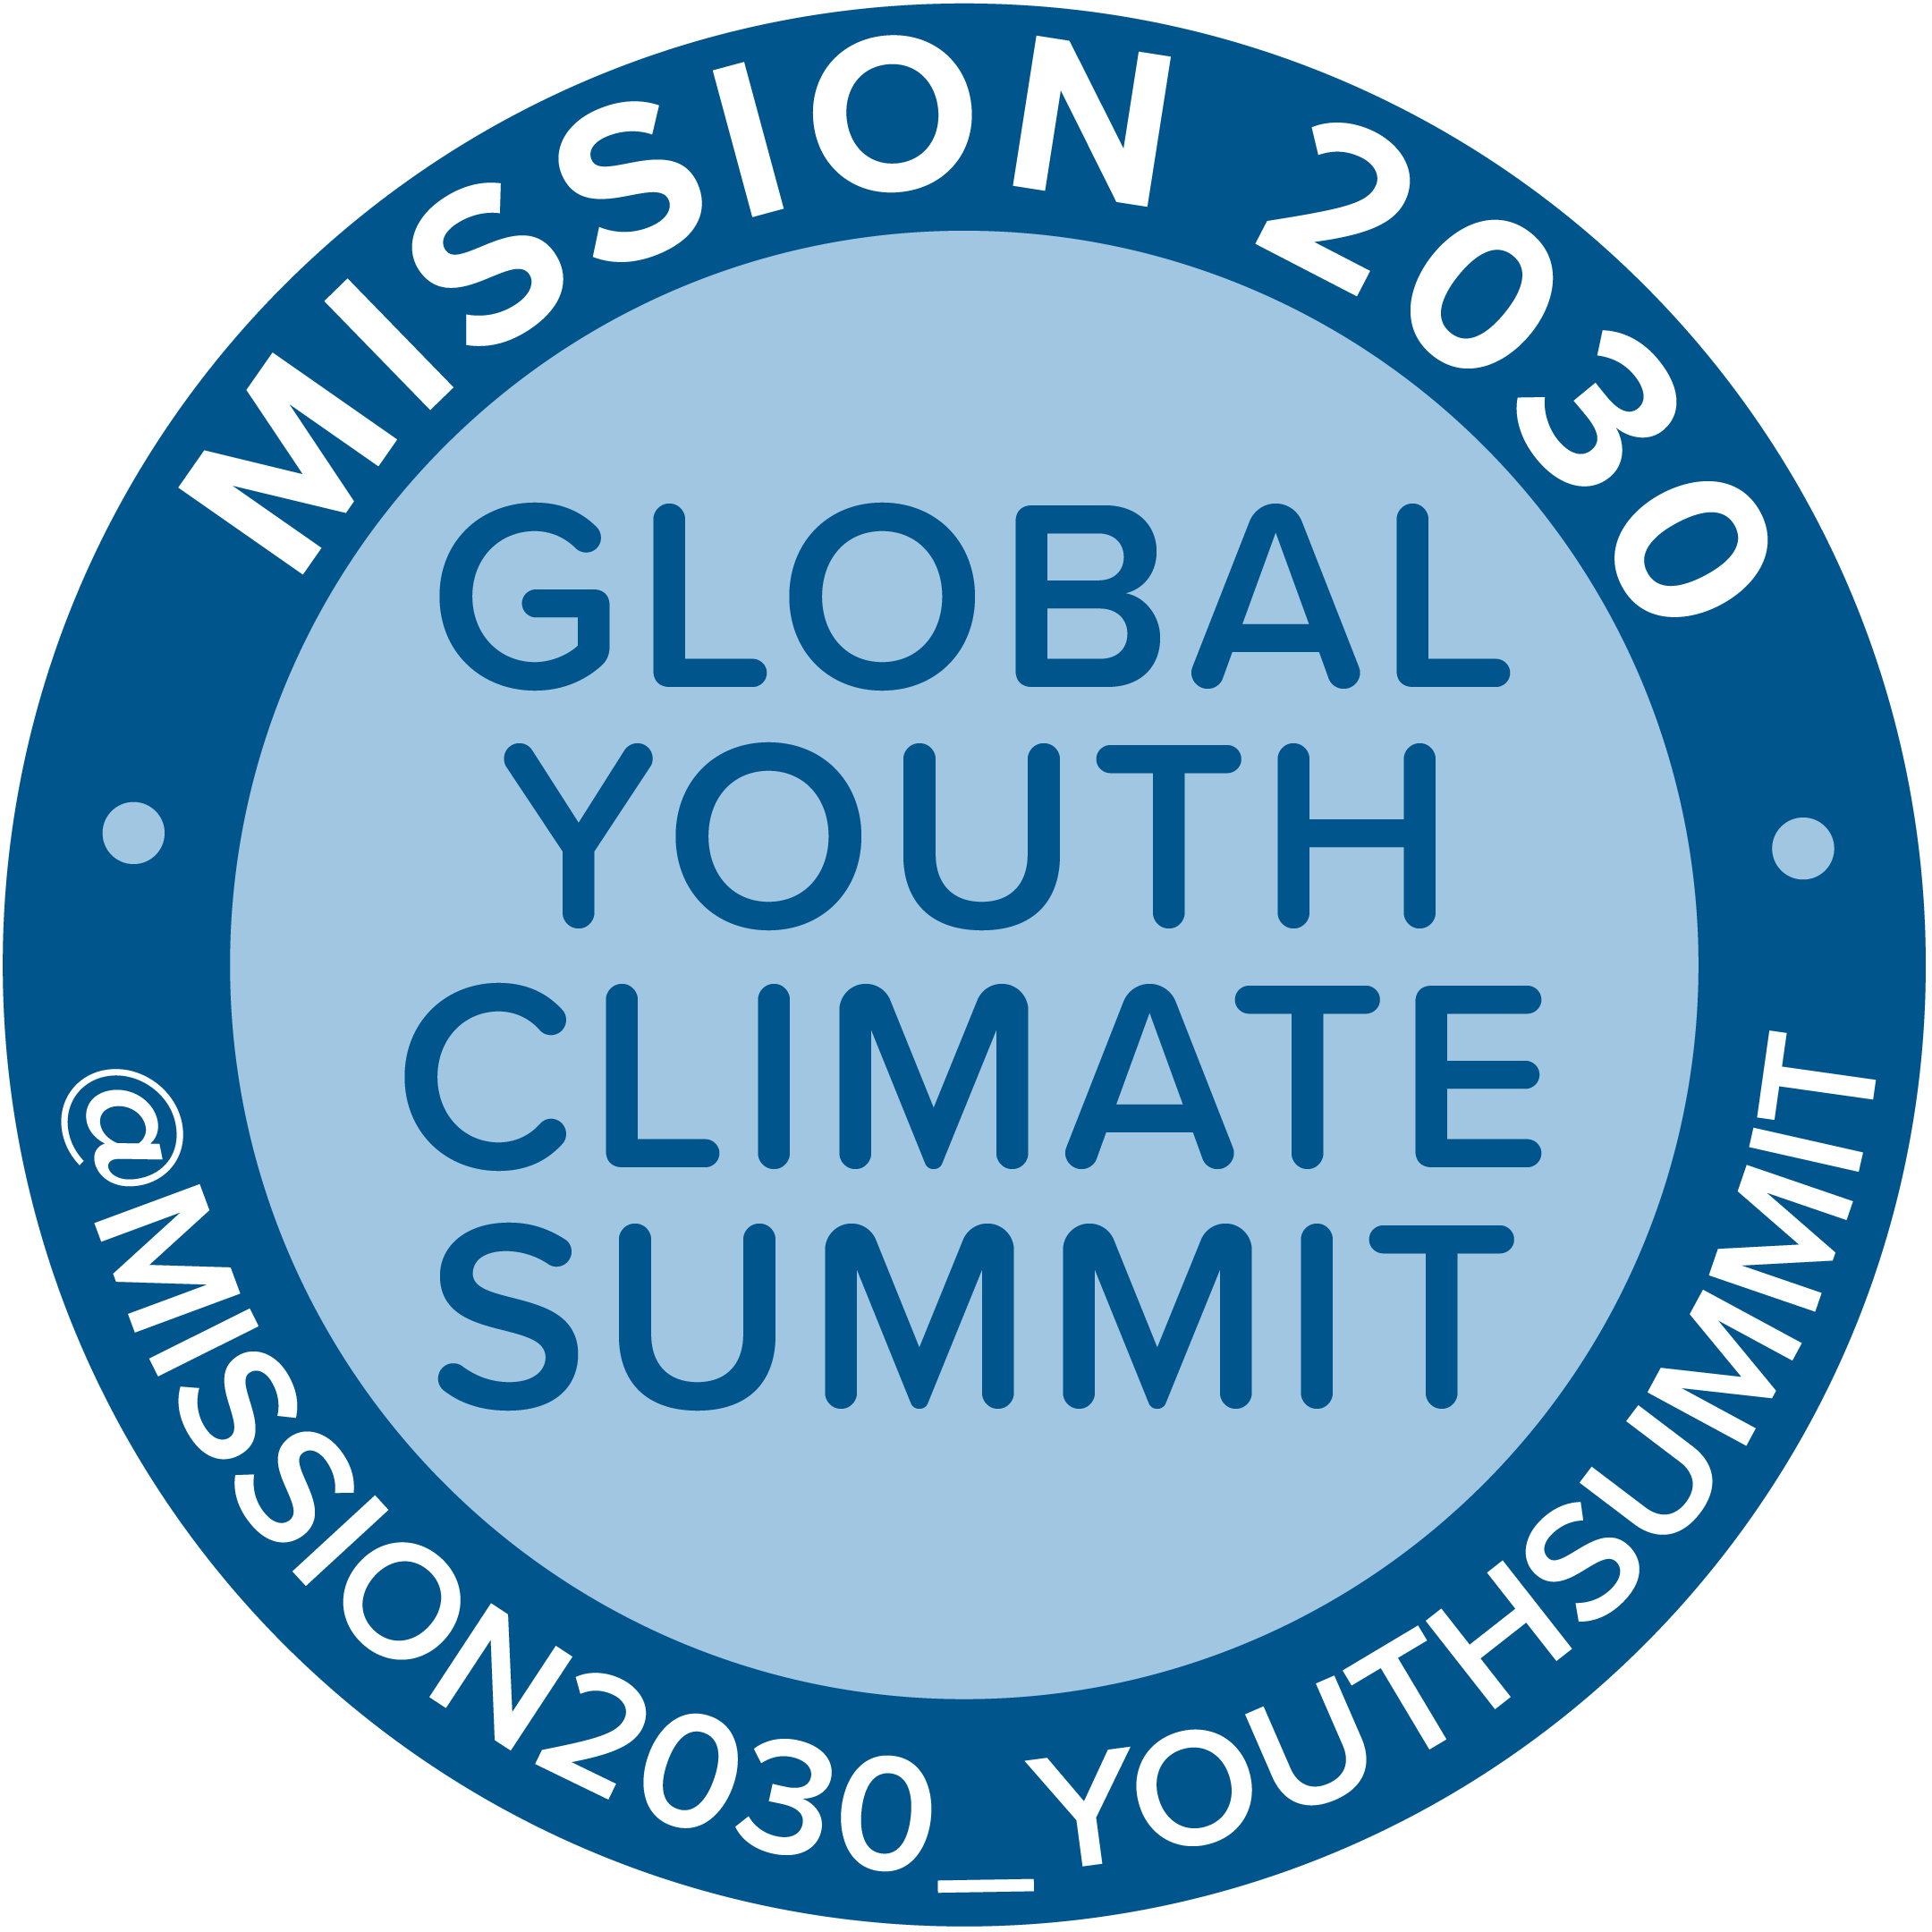 mission2030_youthsummit